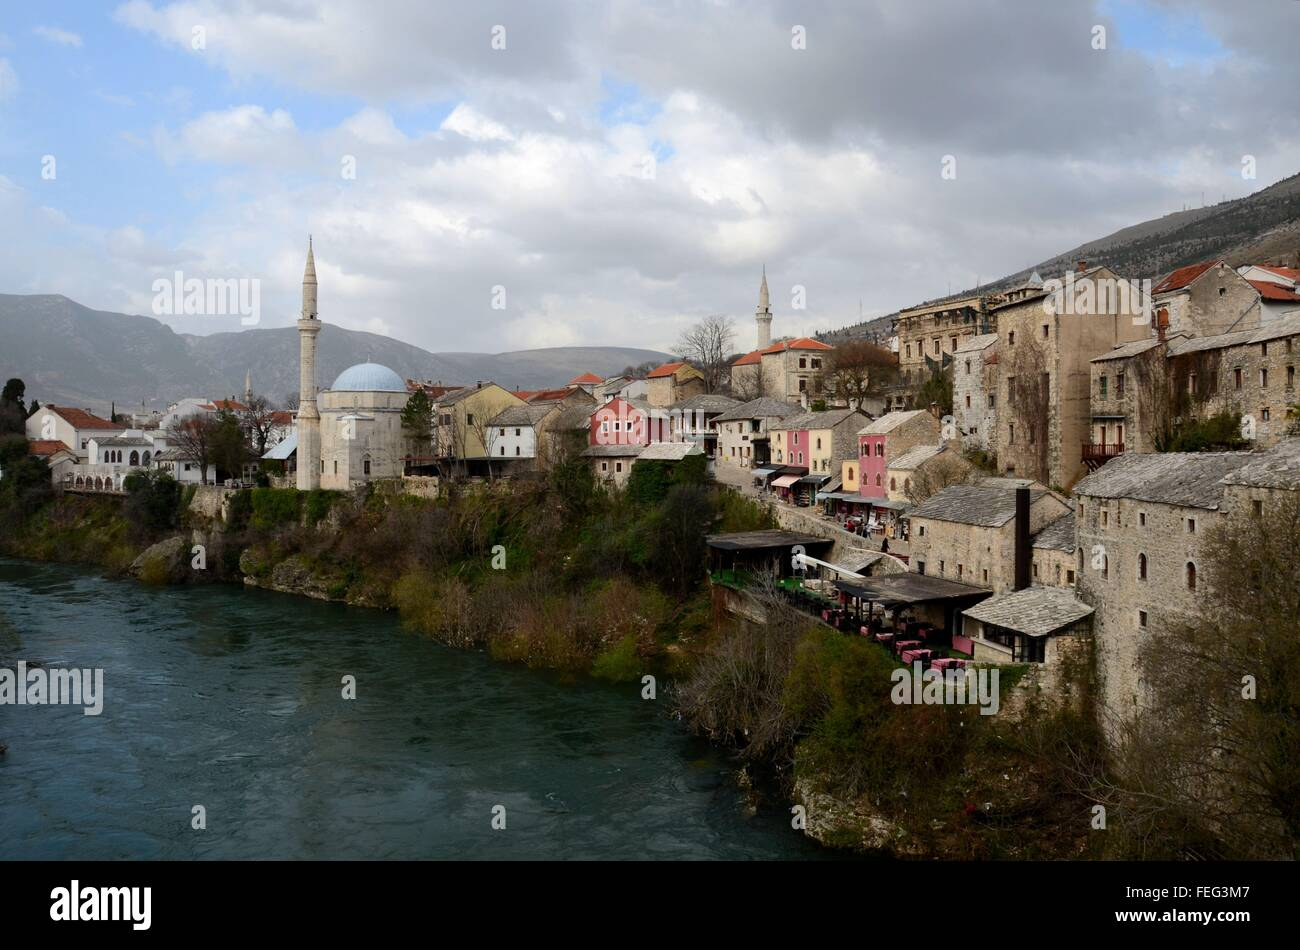 Mostar city with Ottoman Turkish mosque minaret medieval architecture Neretva river Bosnia Herzegovina - Stock Image